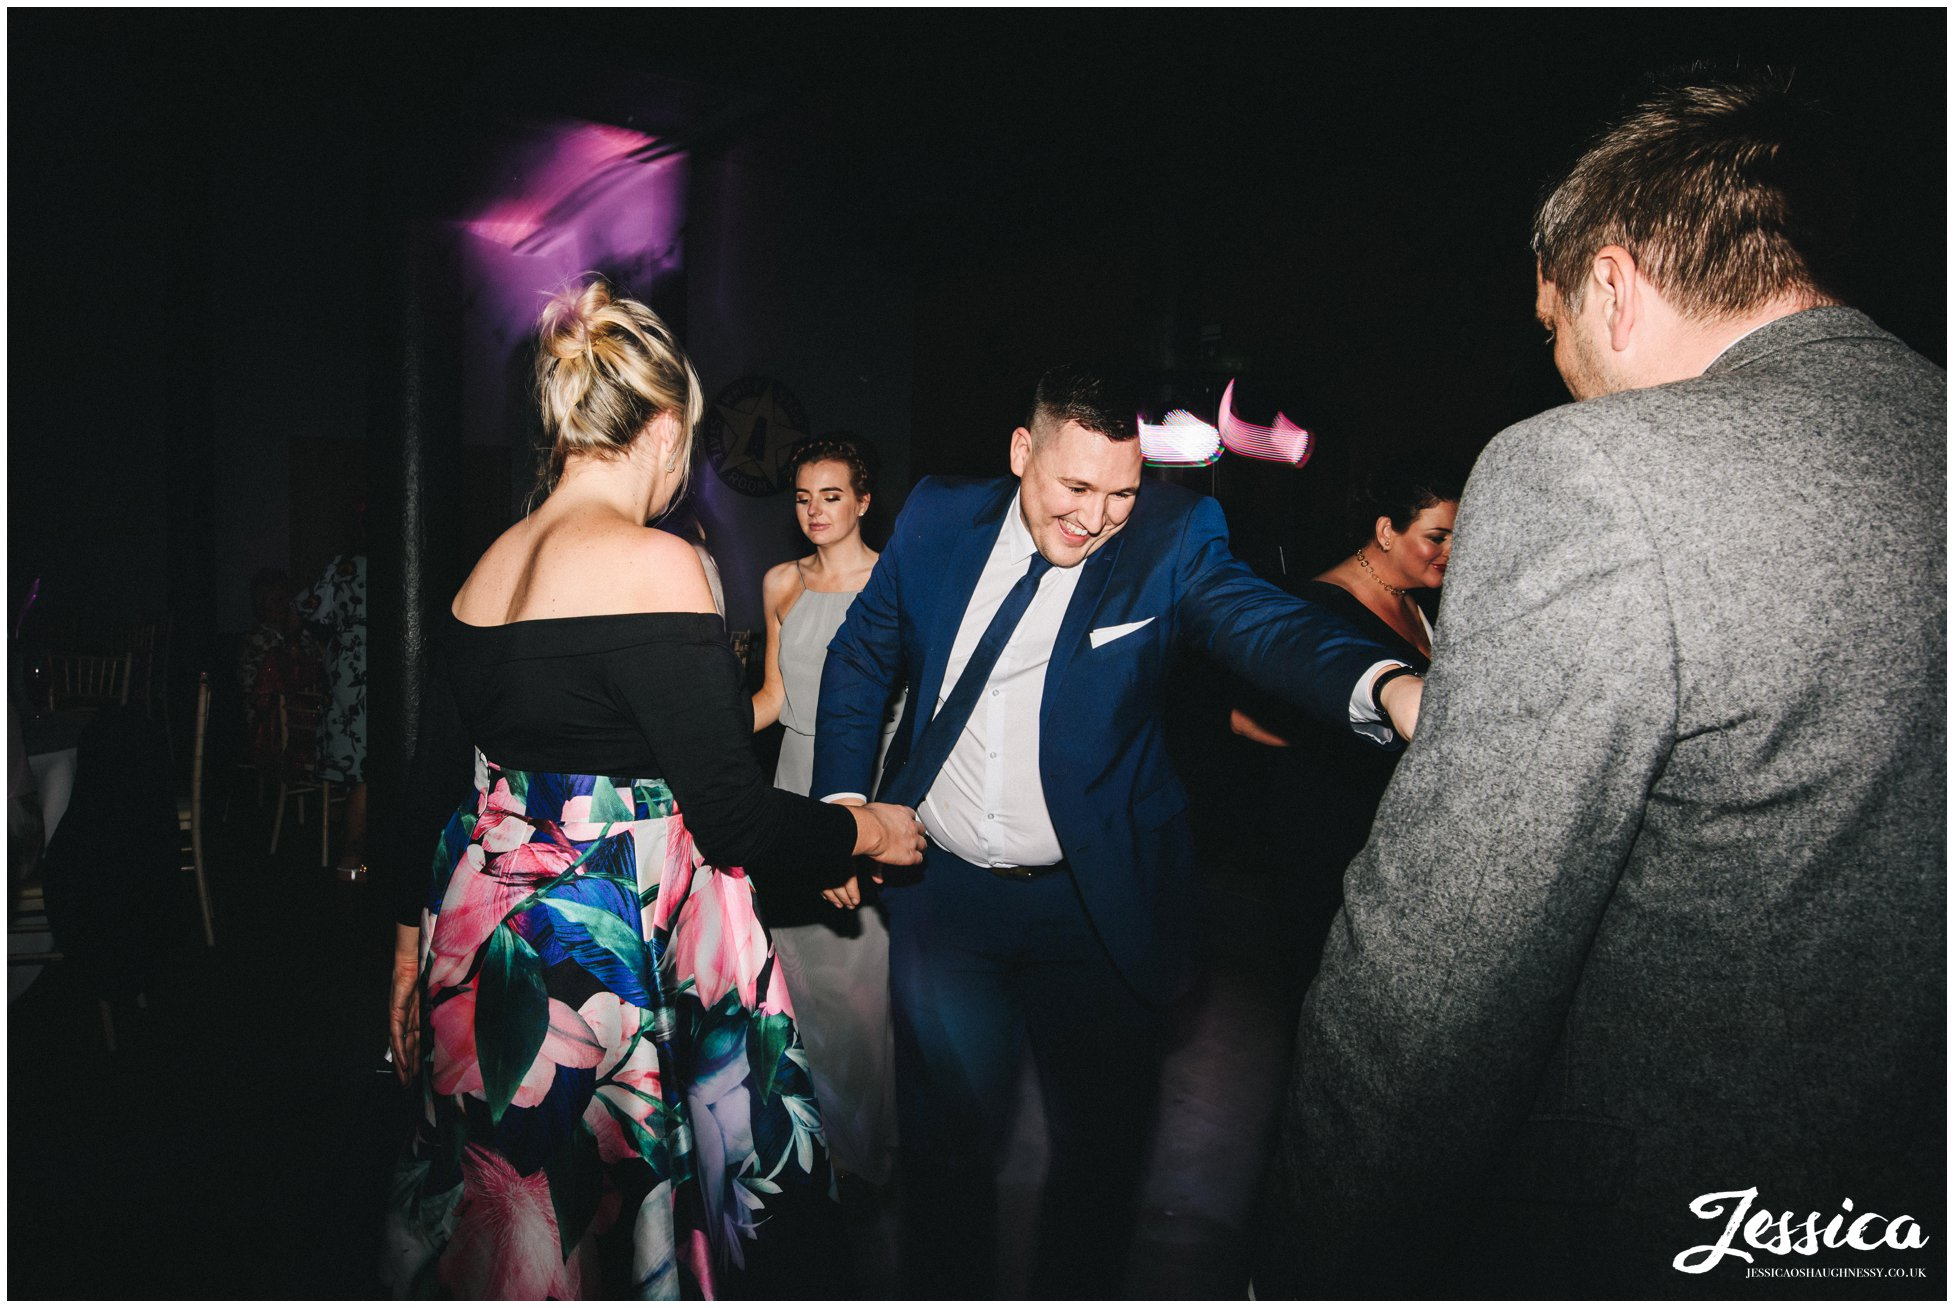 friends of the couple dance on the dancefloor